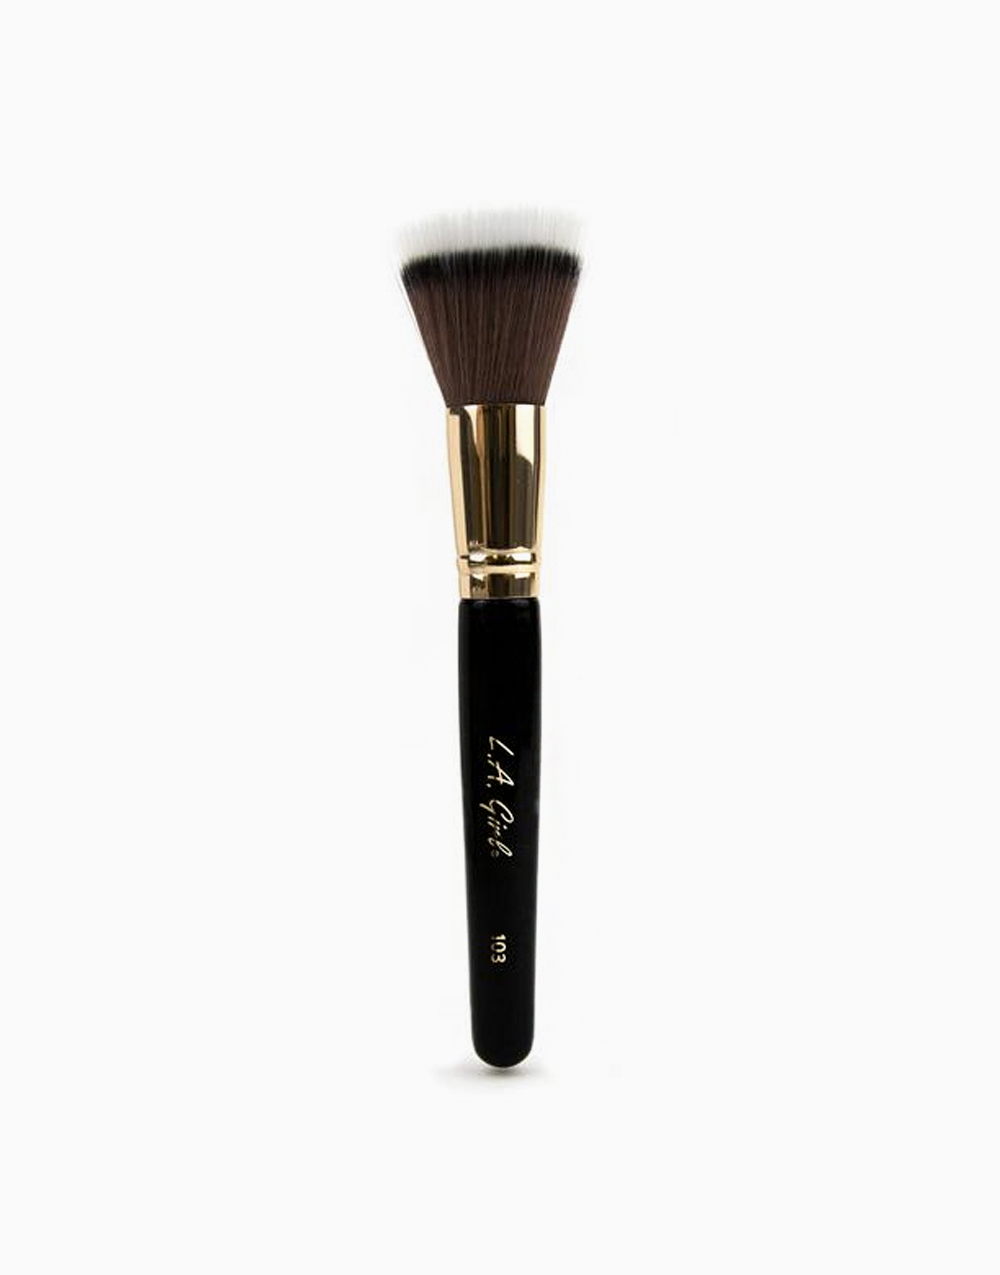 Stippler Brush by L.A. Girl